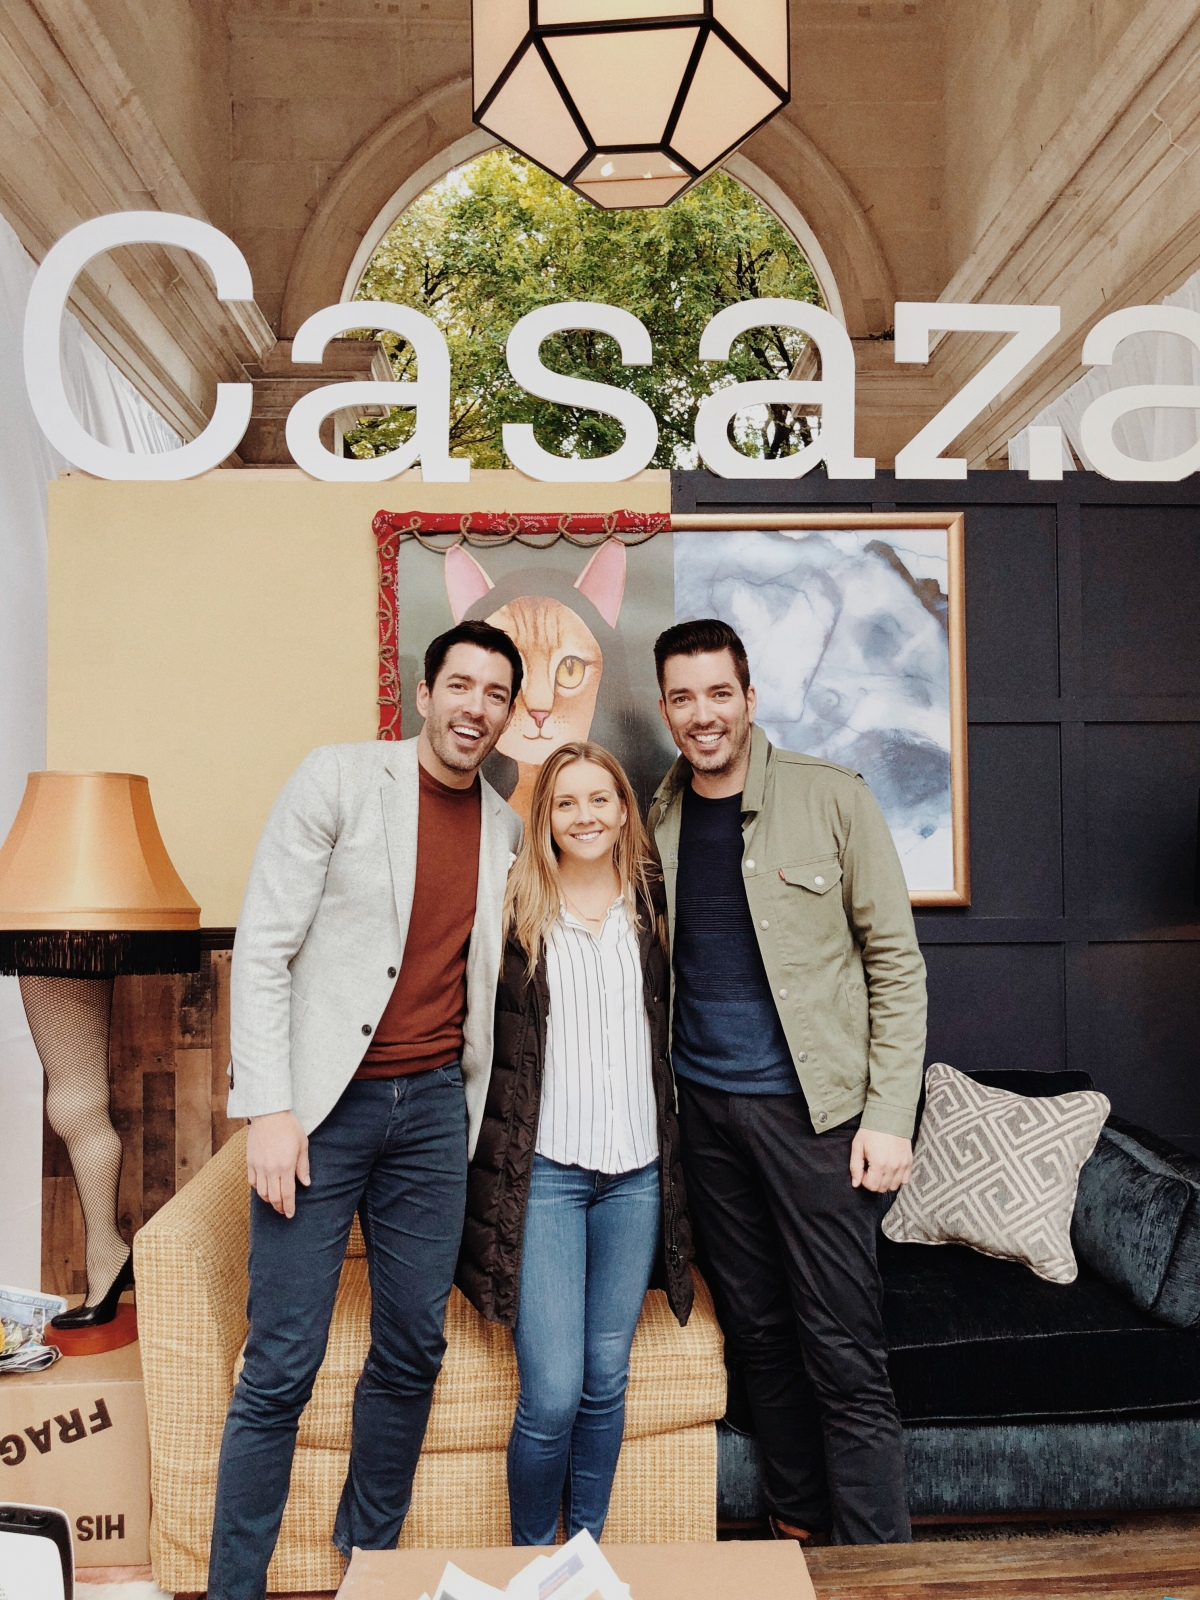 I Met the PropertyBrothers!